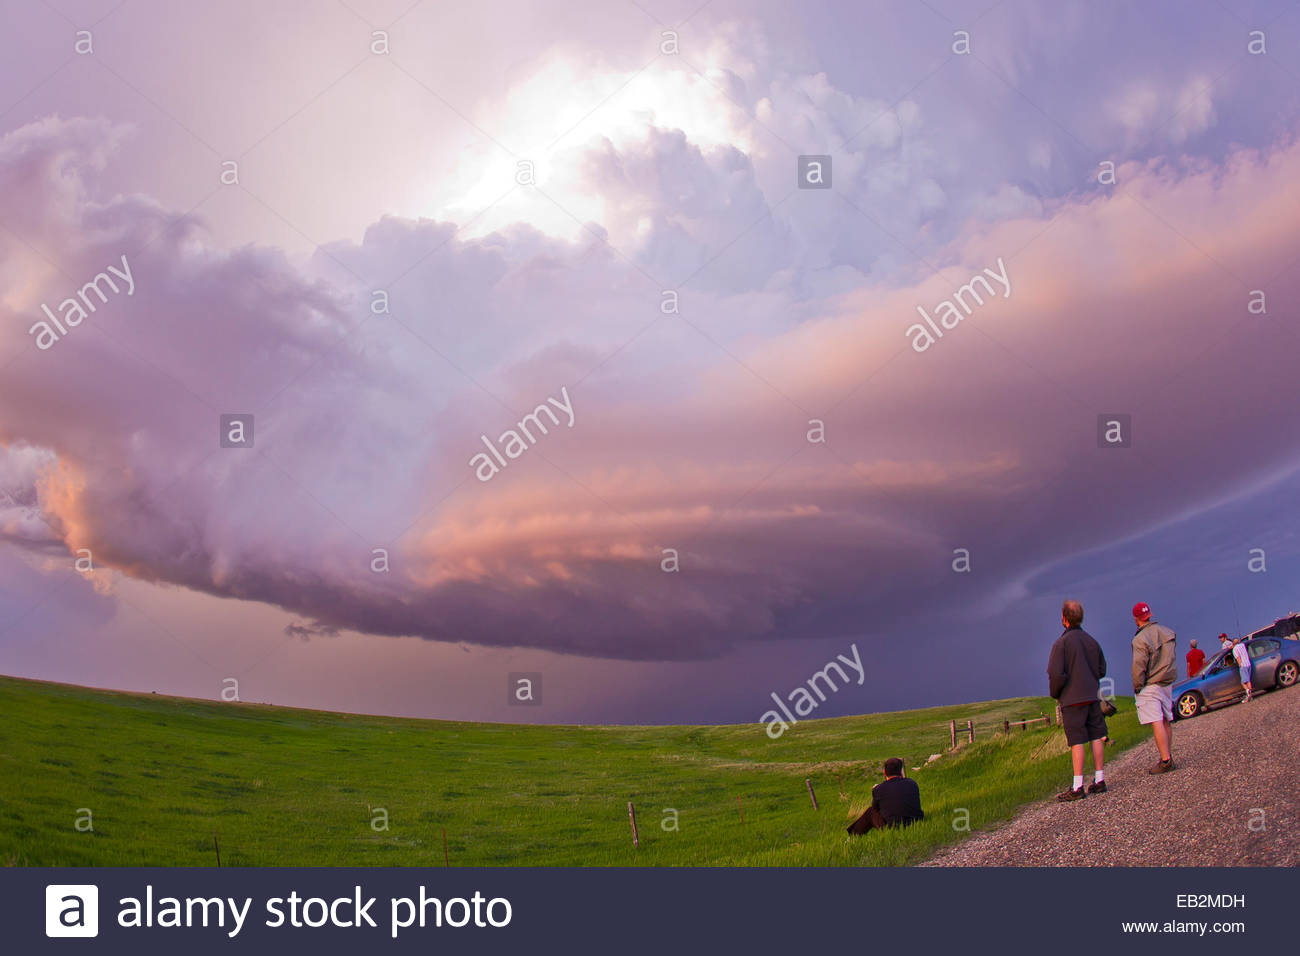 Storm chasers watch a decaying thunderstorm tinted pink and purple by sunset. - Stock Image